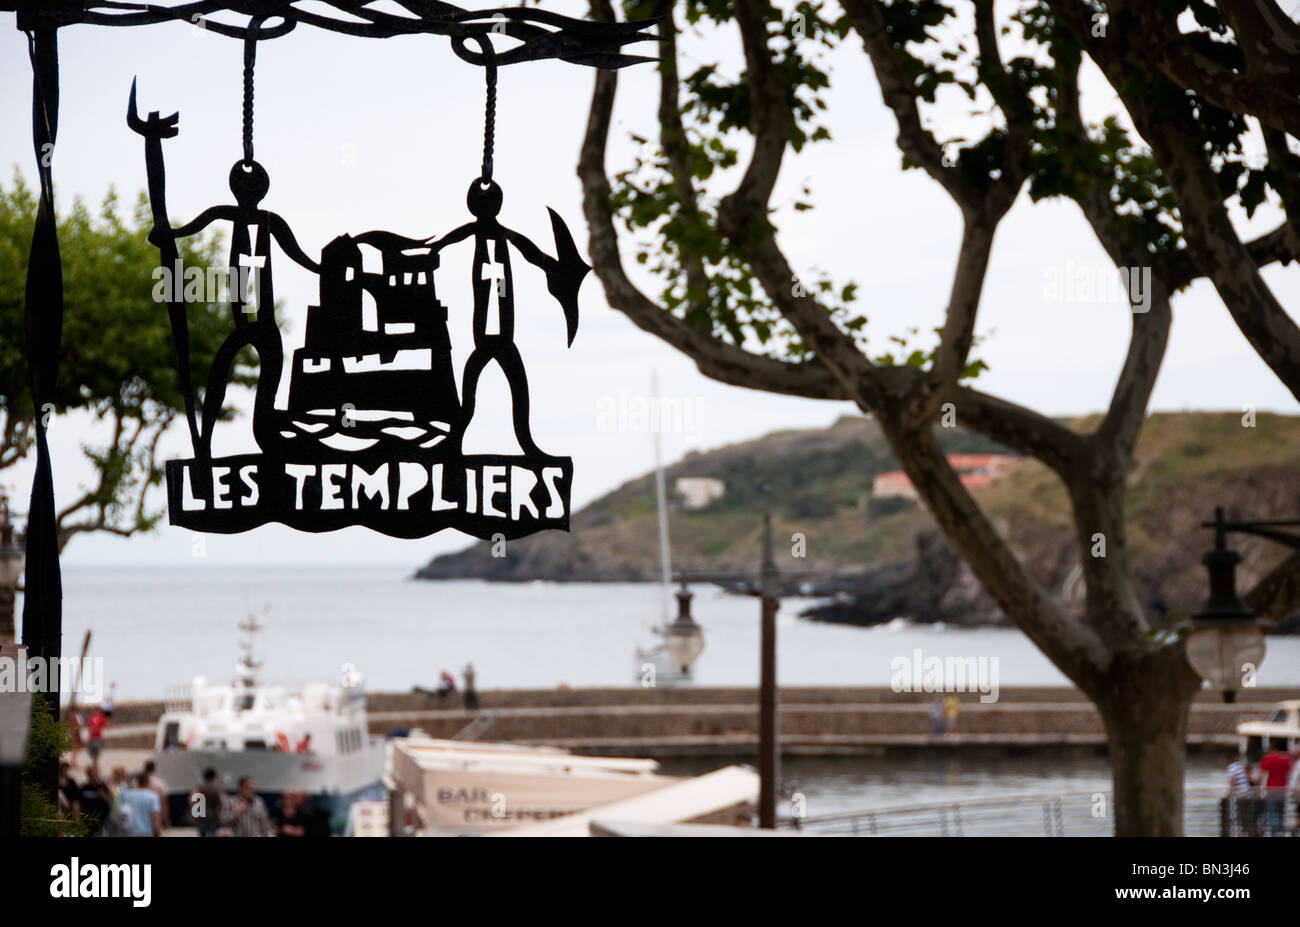 Sign outside Les Templiers restaurant in Collioure, Southern France - Stock Image